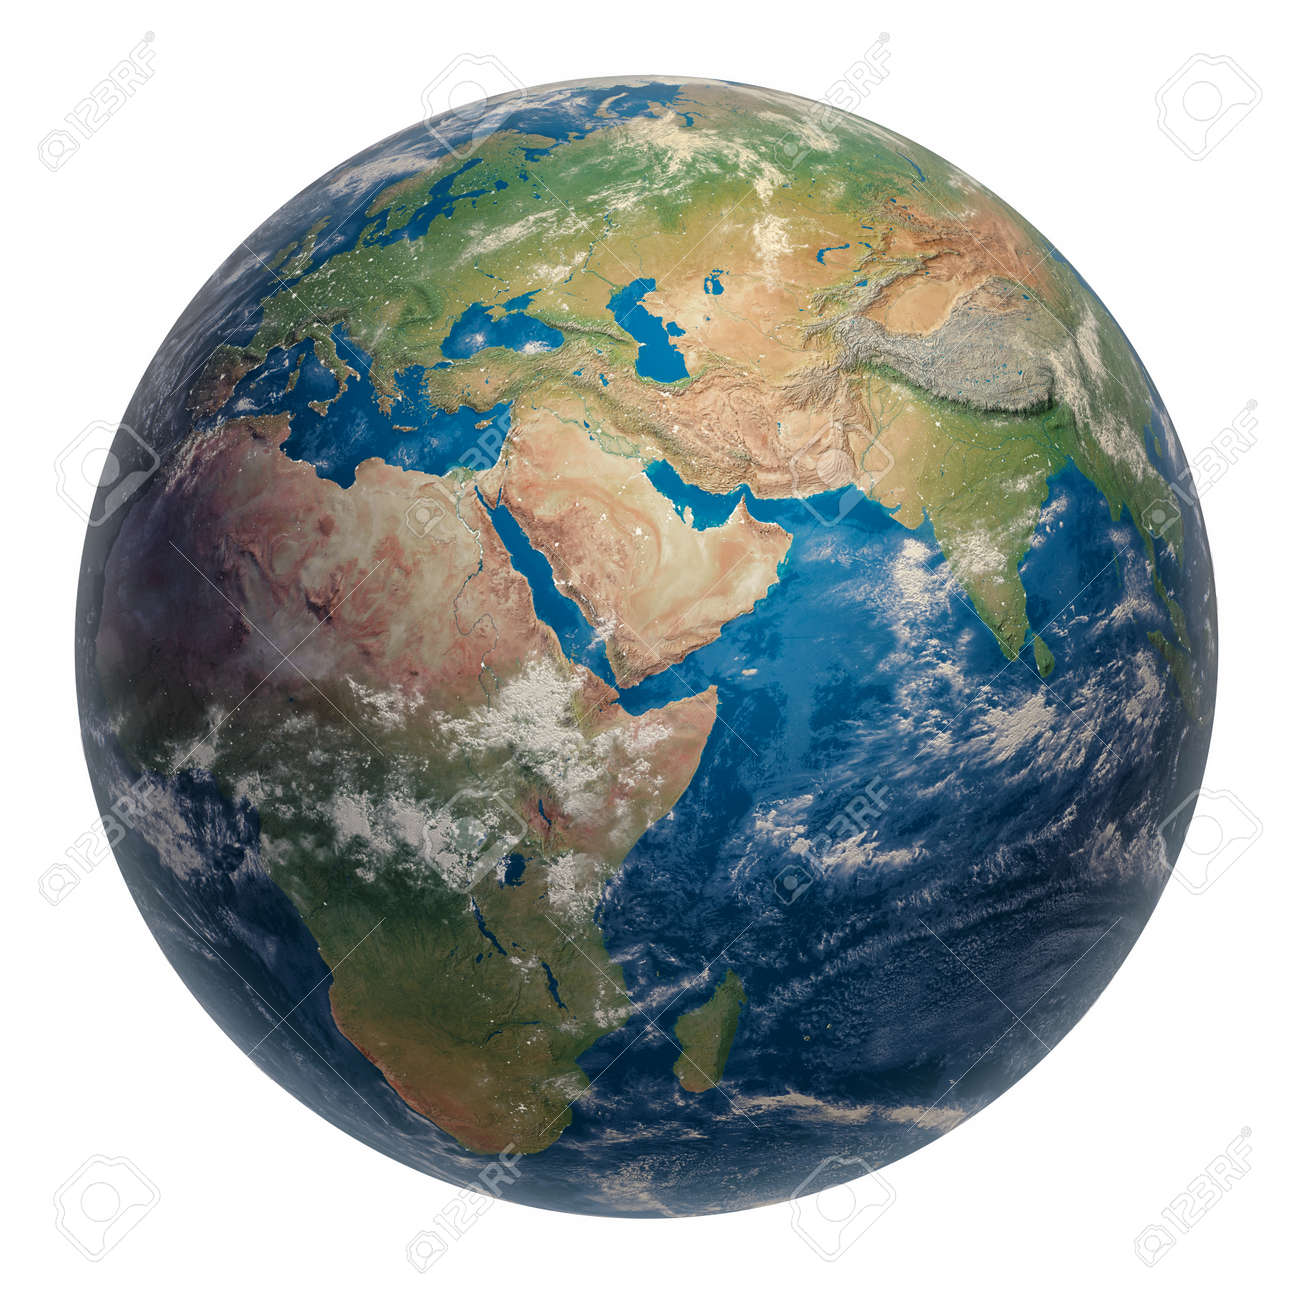 Planet Earth from Space Isolated on White. Clipart 3D Illustration. Parts of the Image Provided by NASA. - 149980157